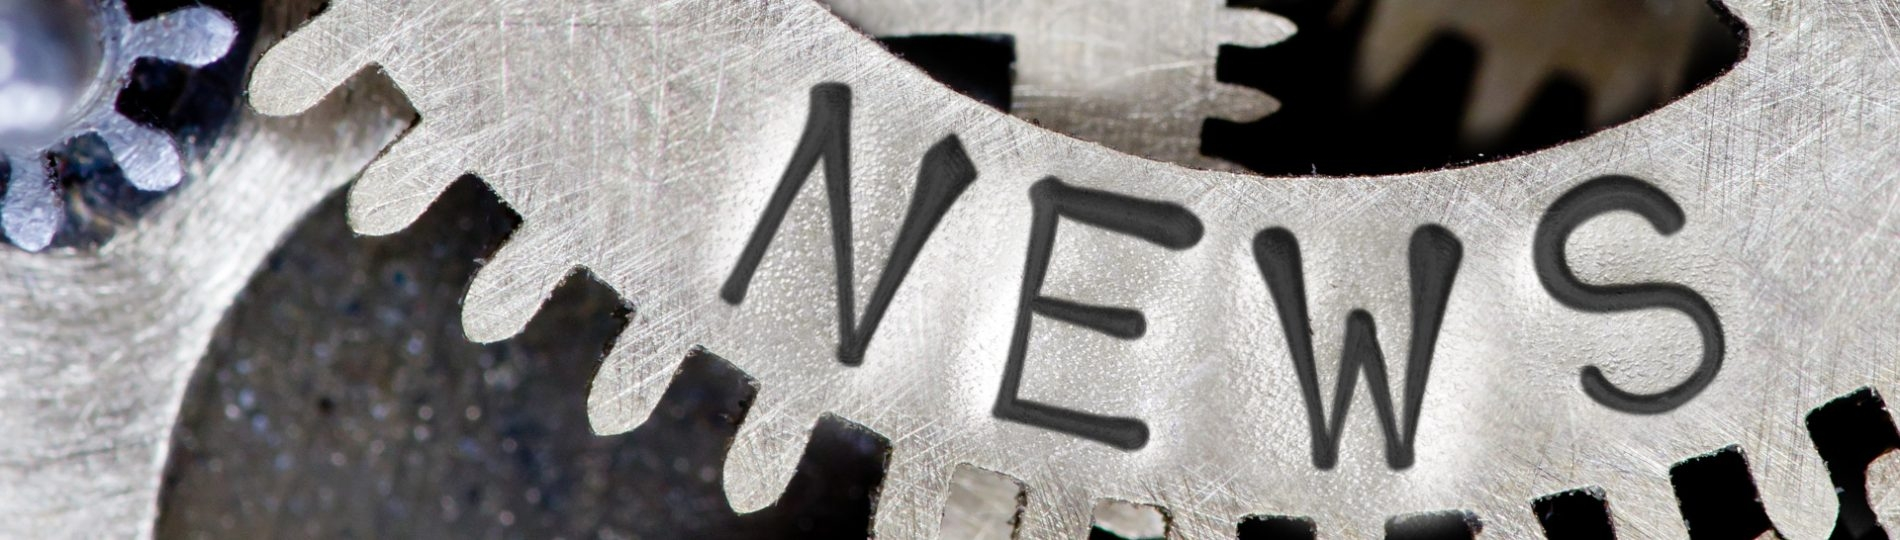 Kent Rubber Supply is a Leading Source of Hydraulic Hose and Rubber Services & Hydraulic Hose | Kent Rubber Supply